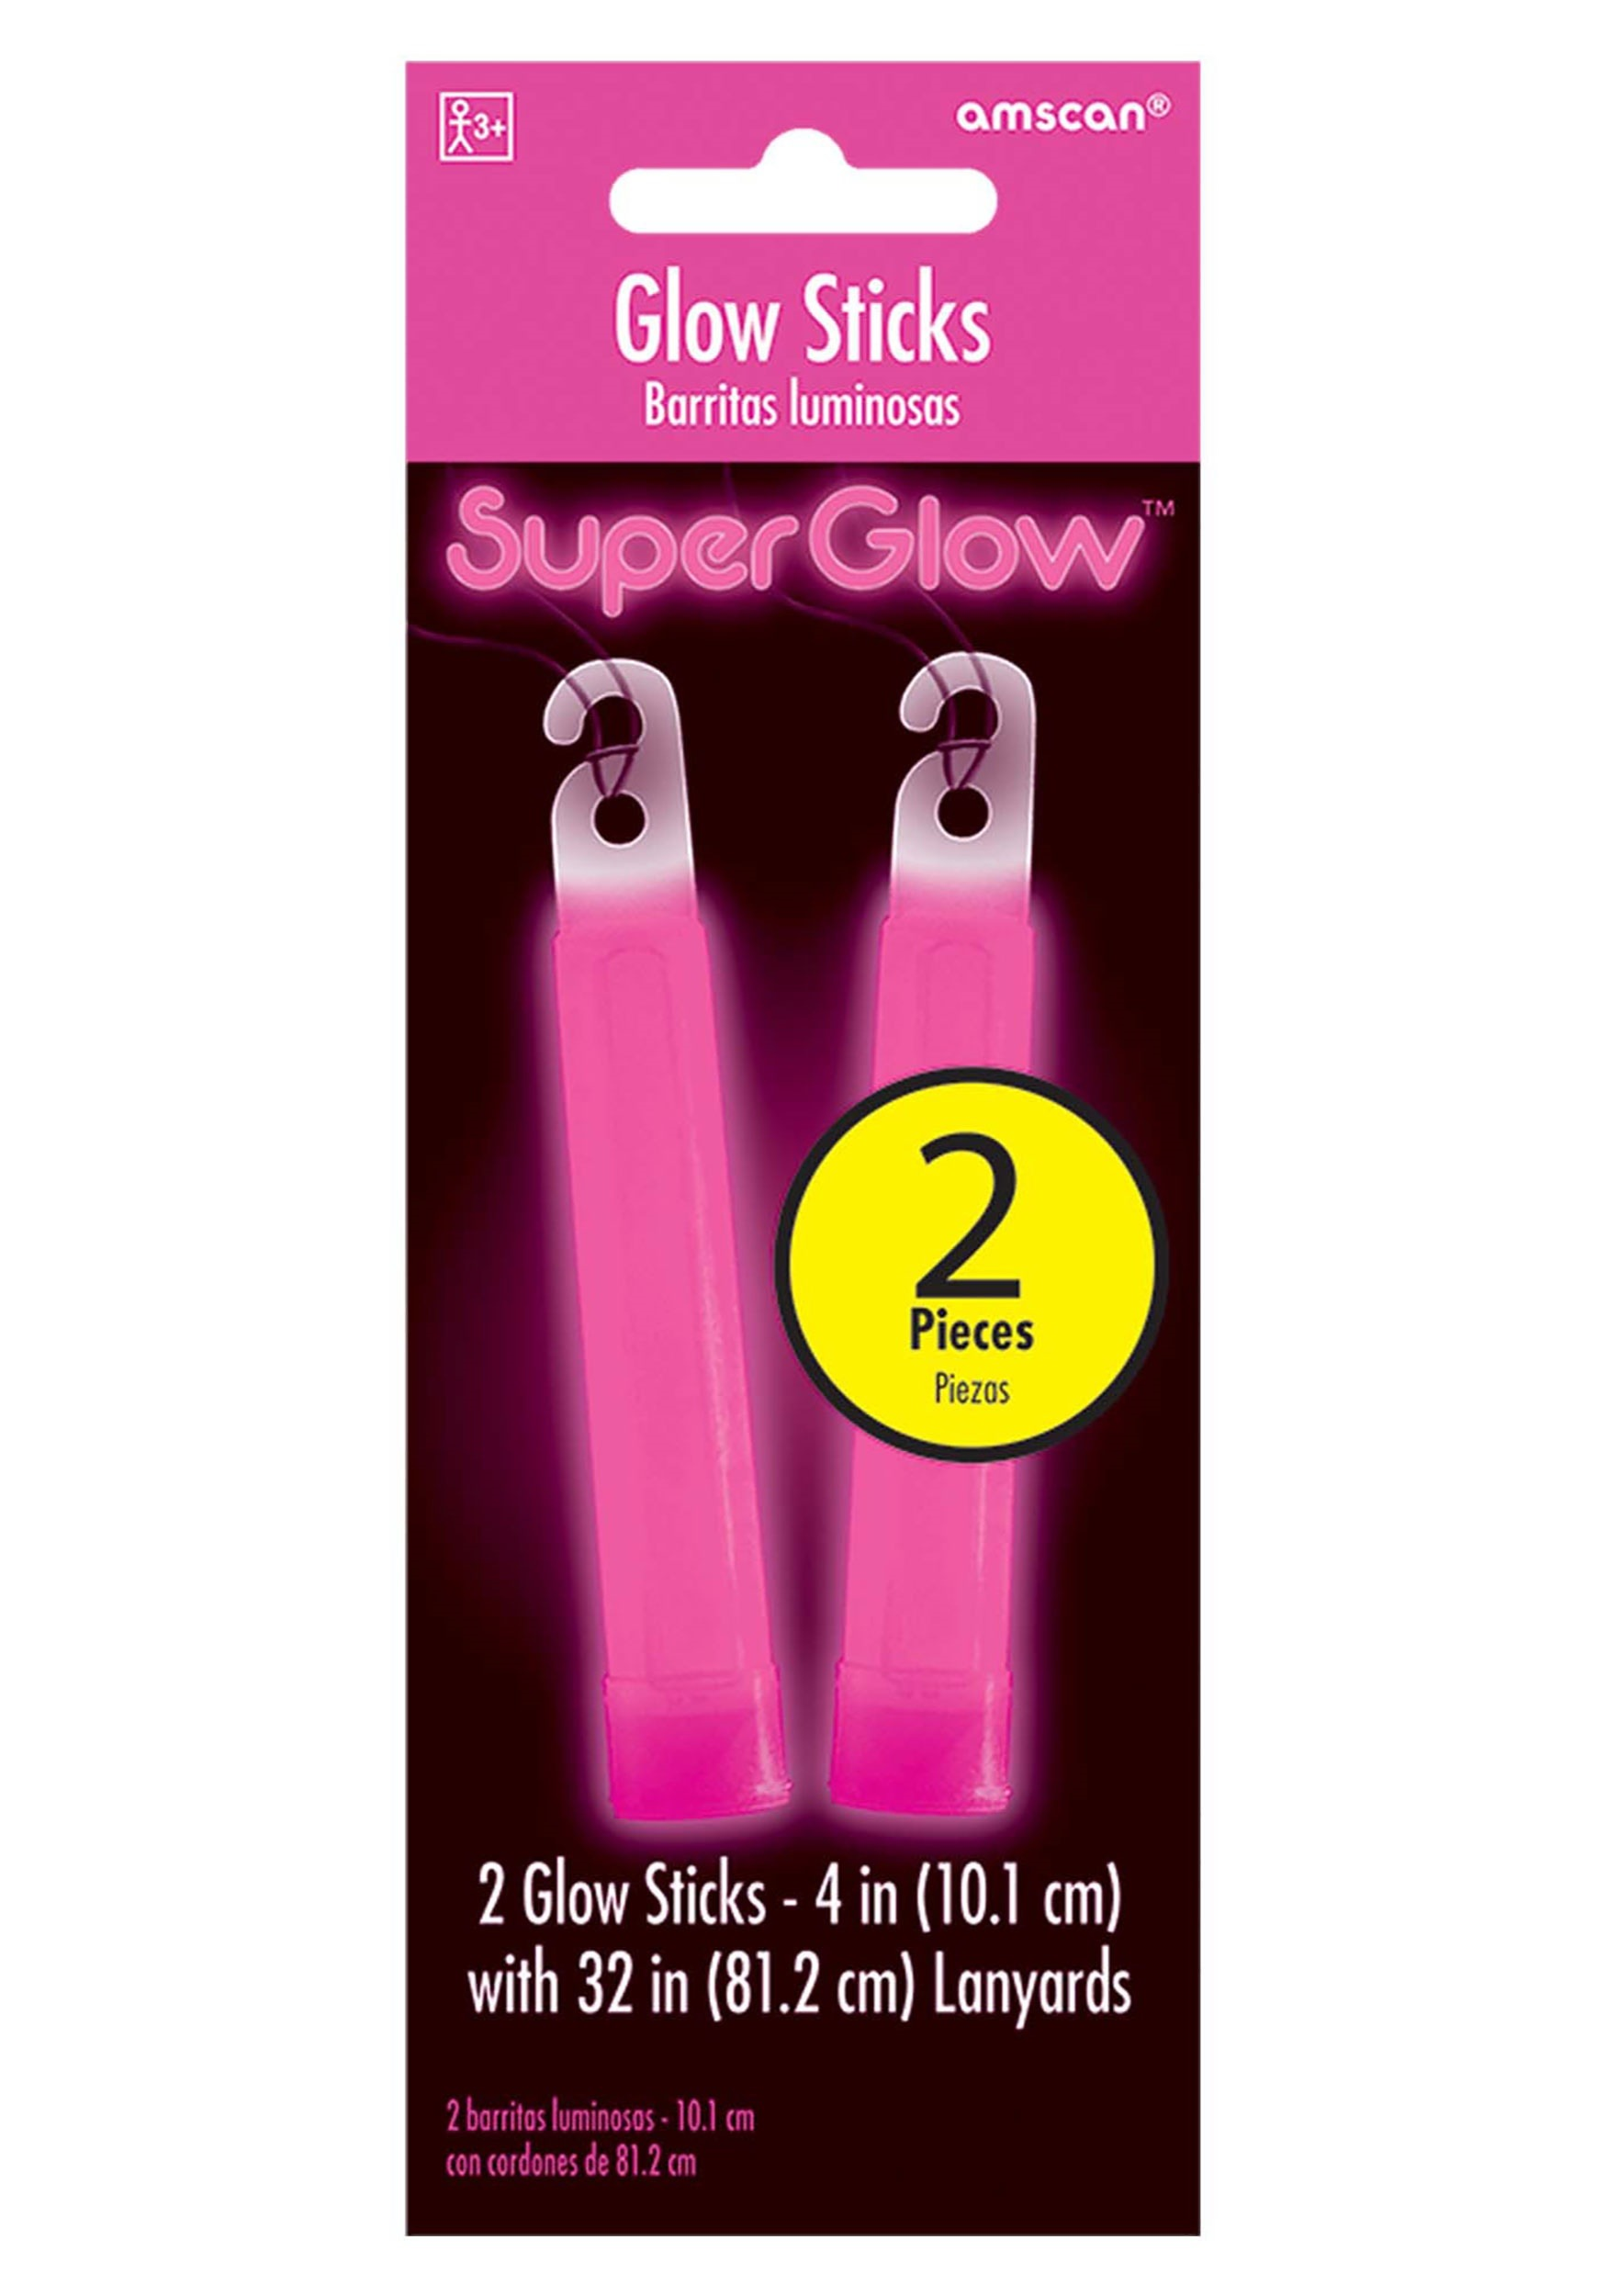 4 pink glow sticks pack of 2